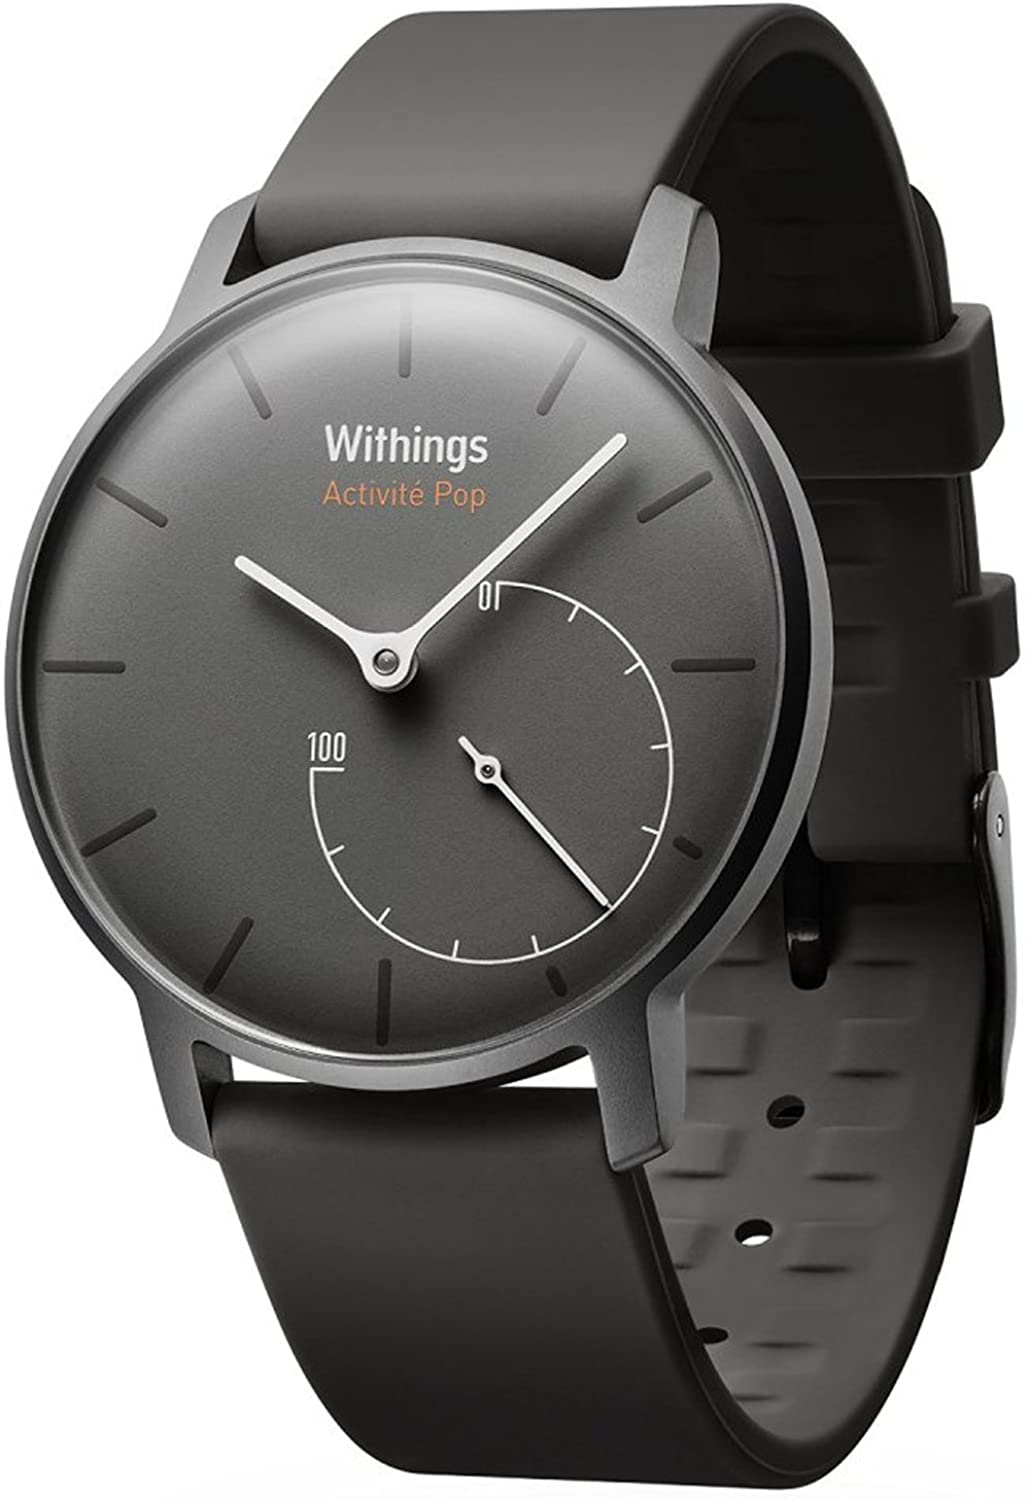 Withings ActivitÉ Pop - Smartwatch und Fitnesstracker - Bluetooth - shark grey